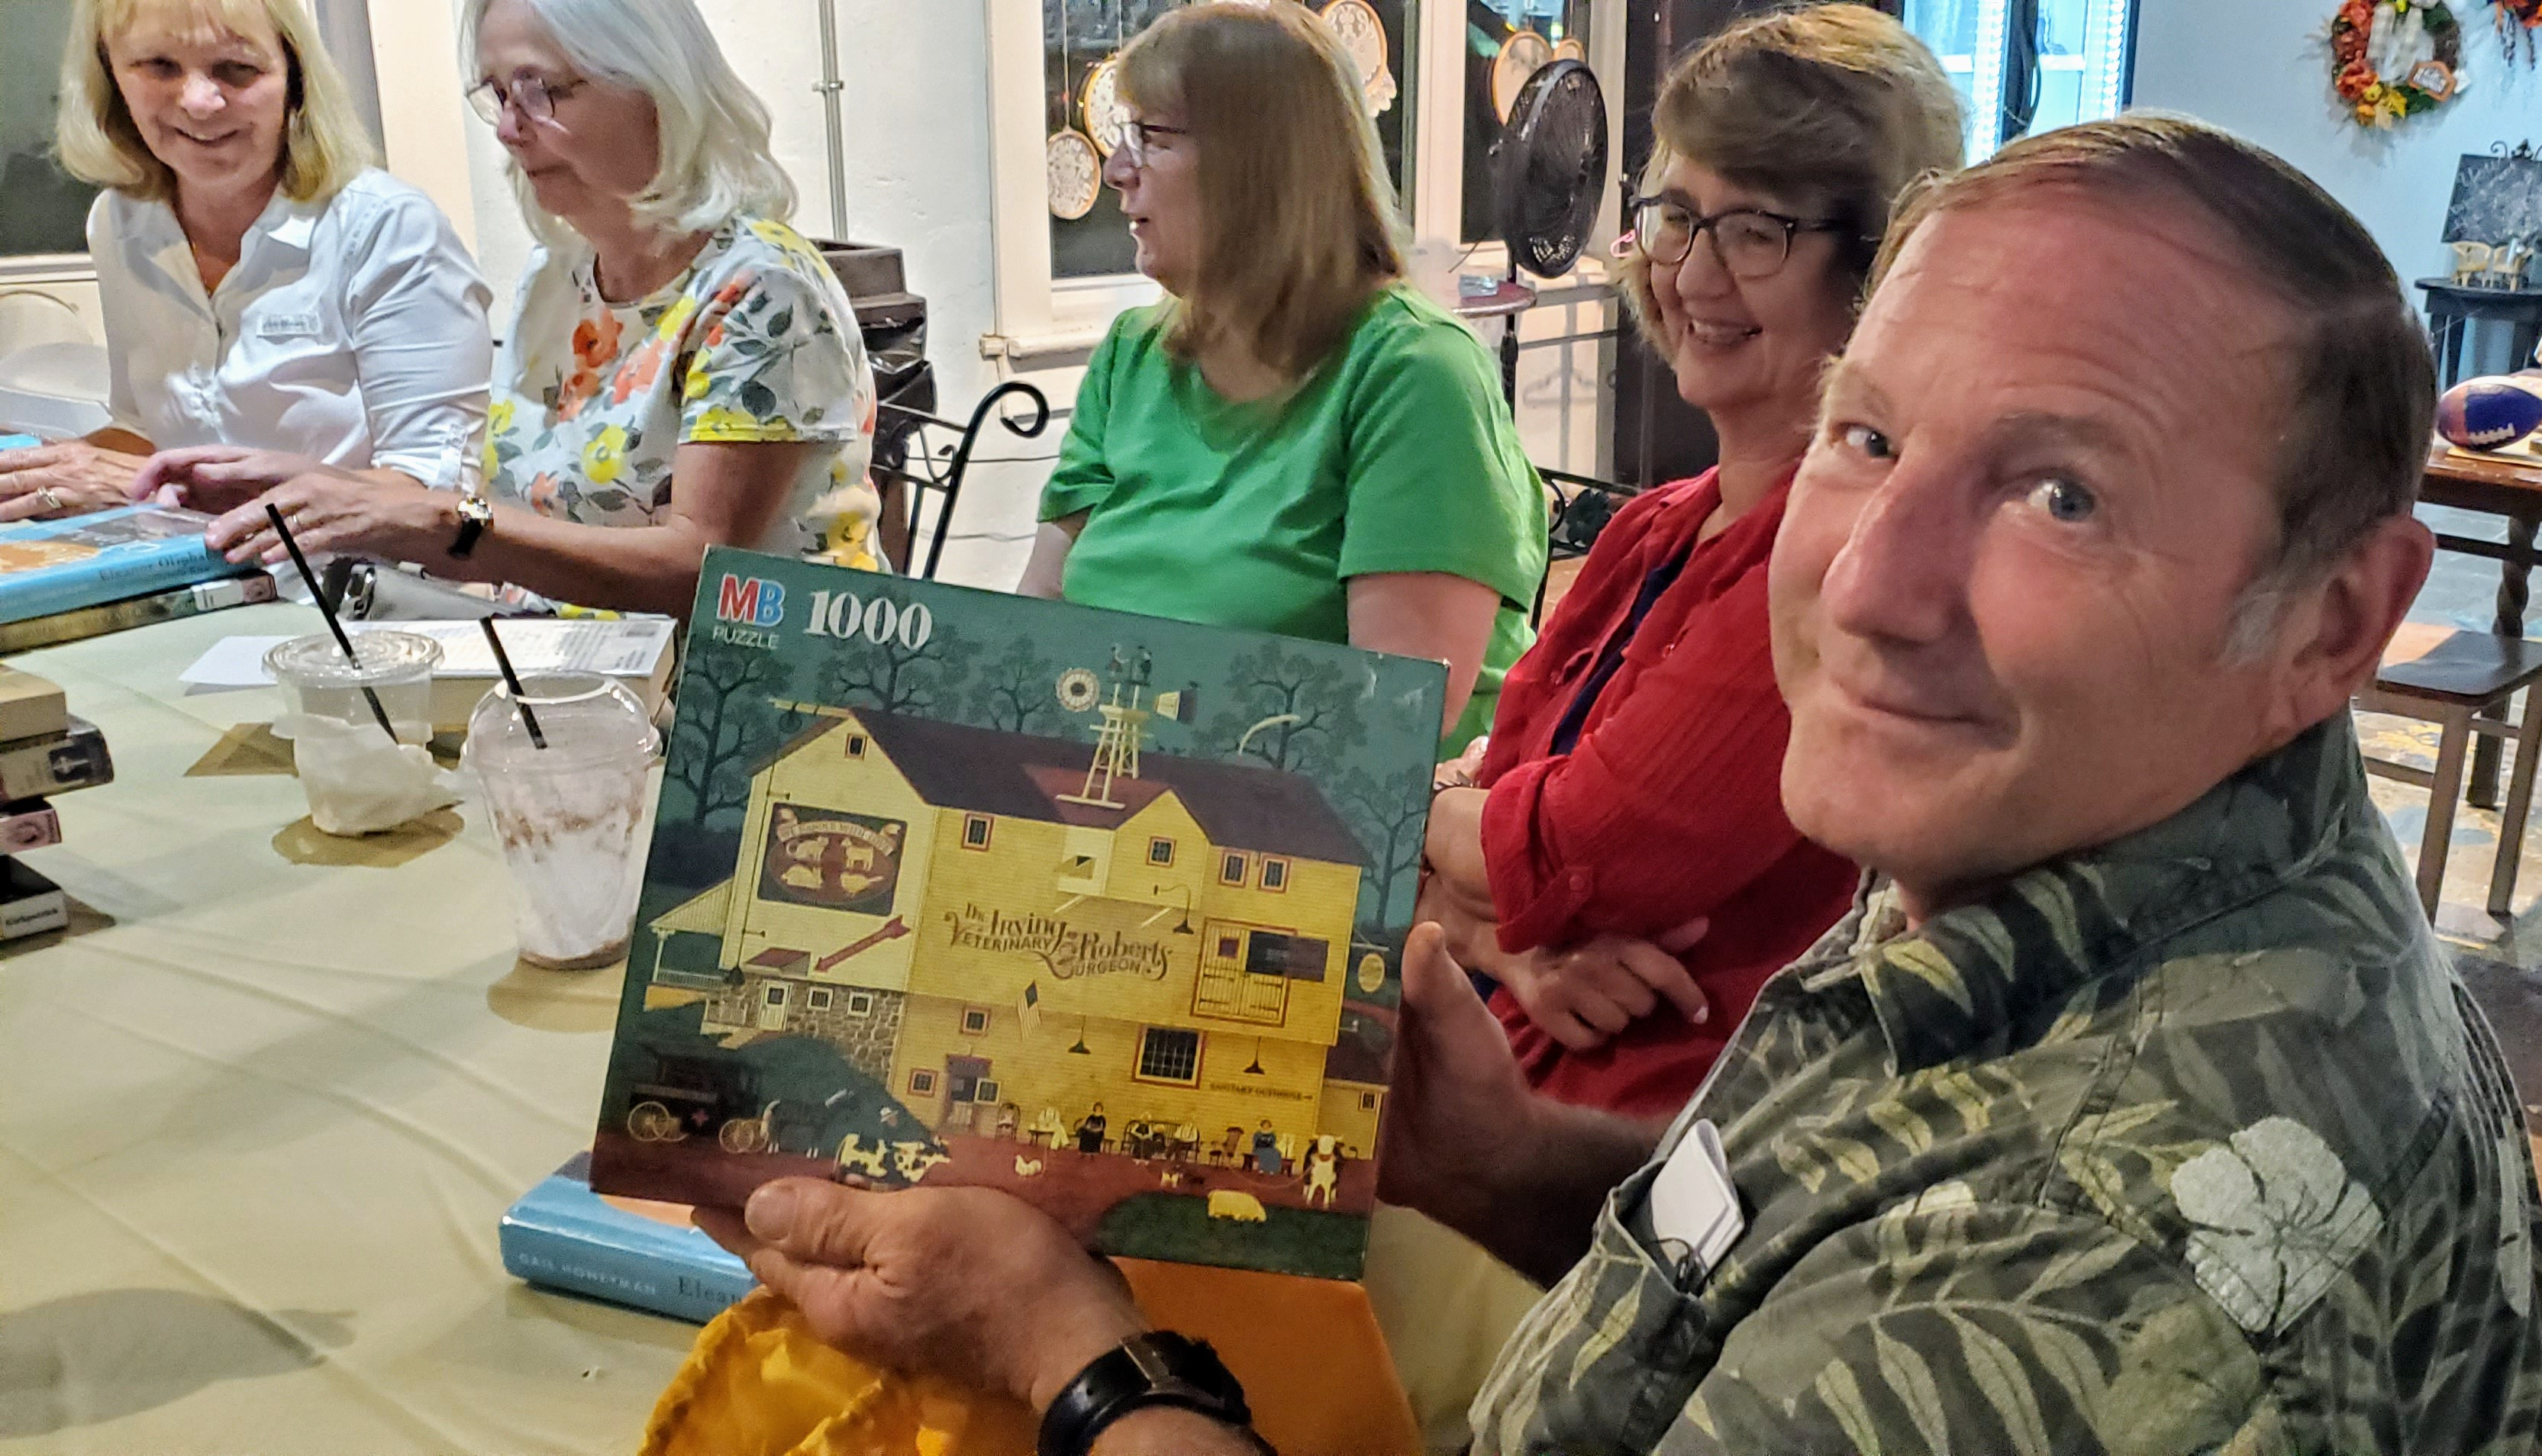 With 12 people attended the August 'Around Town' Book Club meeting held at Two Hands Coffee. Dr. Fred Brown was presented with a special door prize at the end of the meeting.